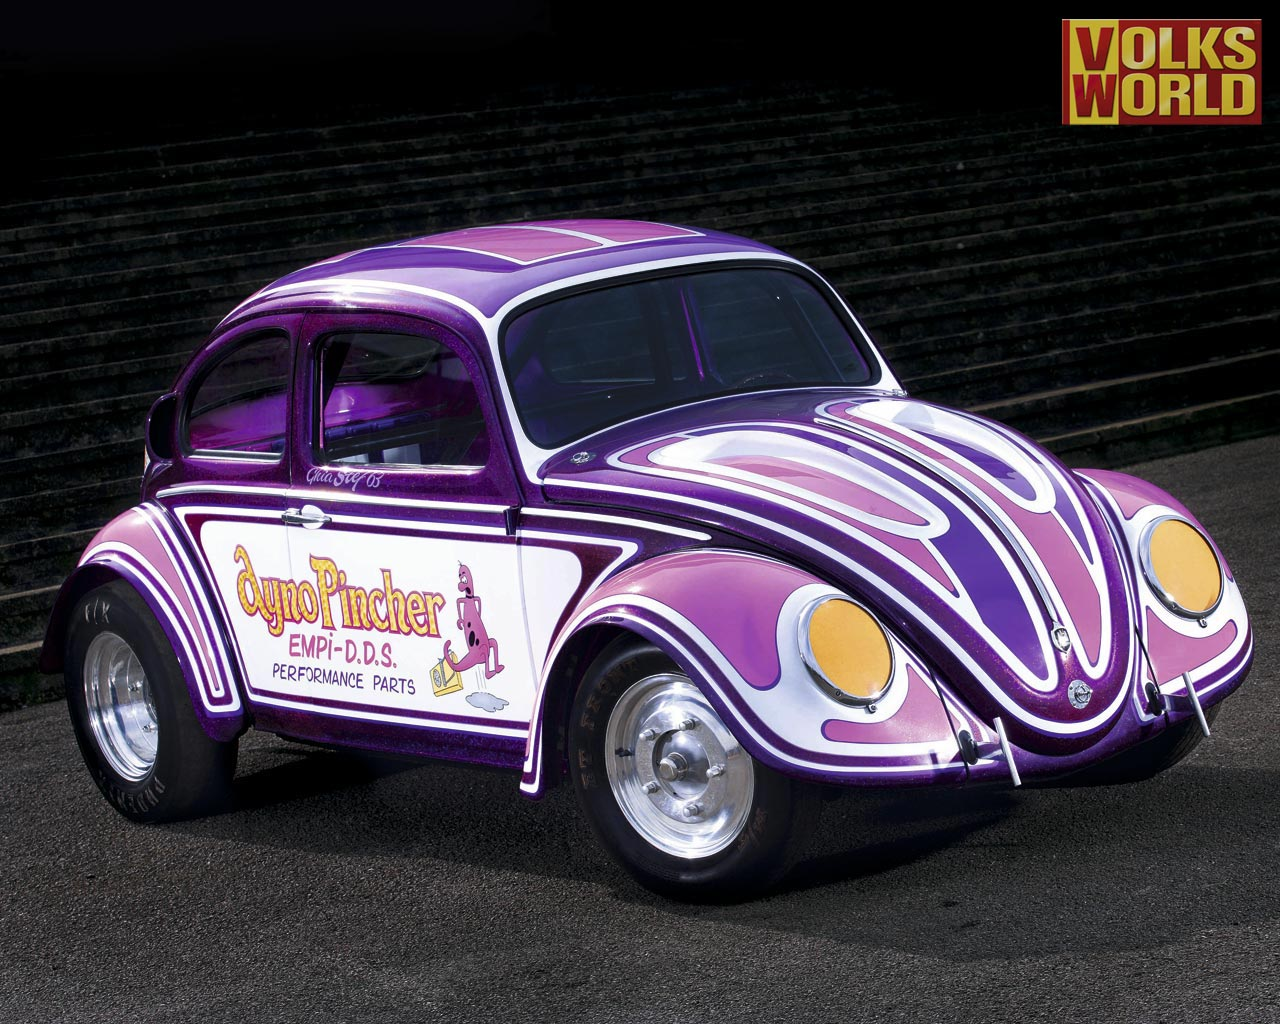 vw beetle wallpaper 7 normal54 1280x1024